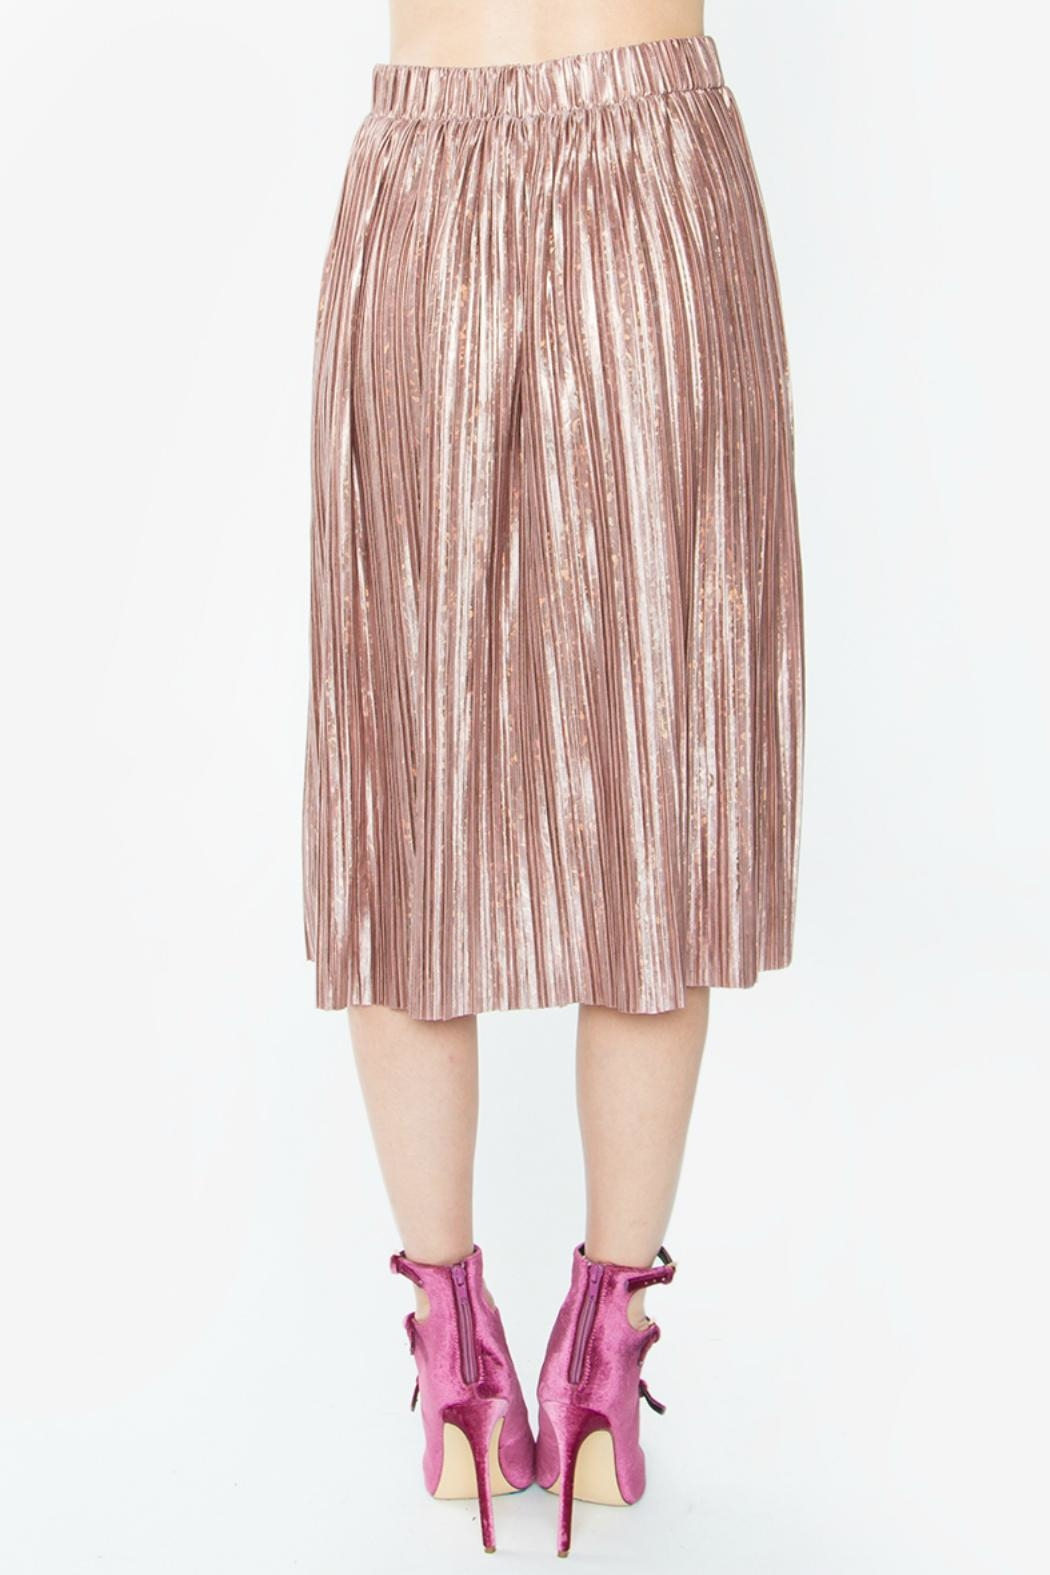 Sugar Lips Minori Pleated Metallic Skirt - Front Full Image